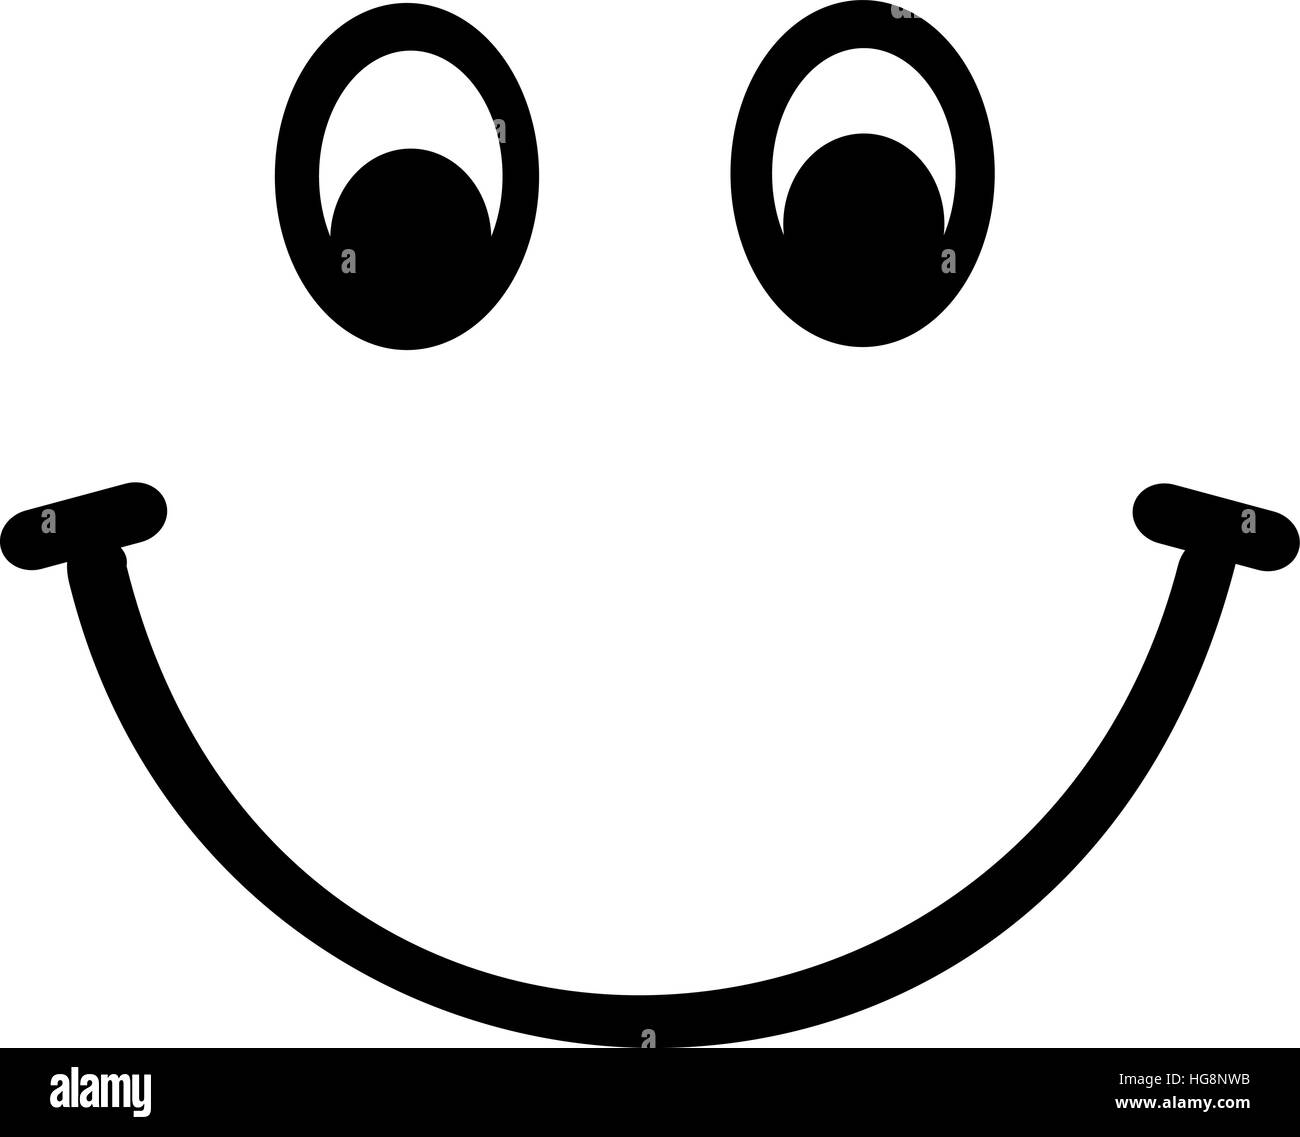 Smiley face black and white